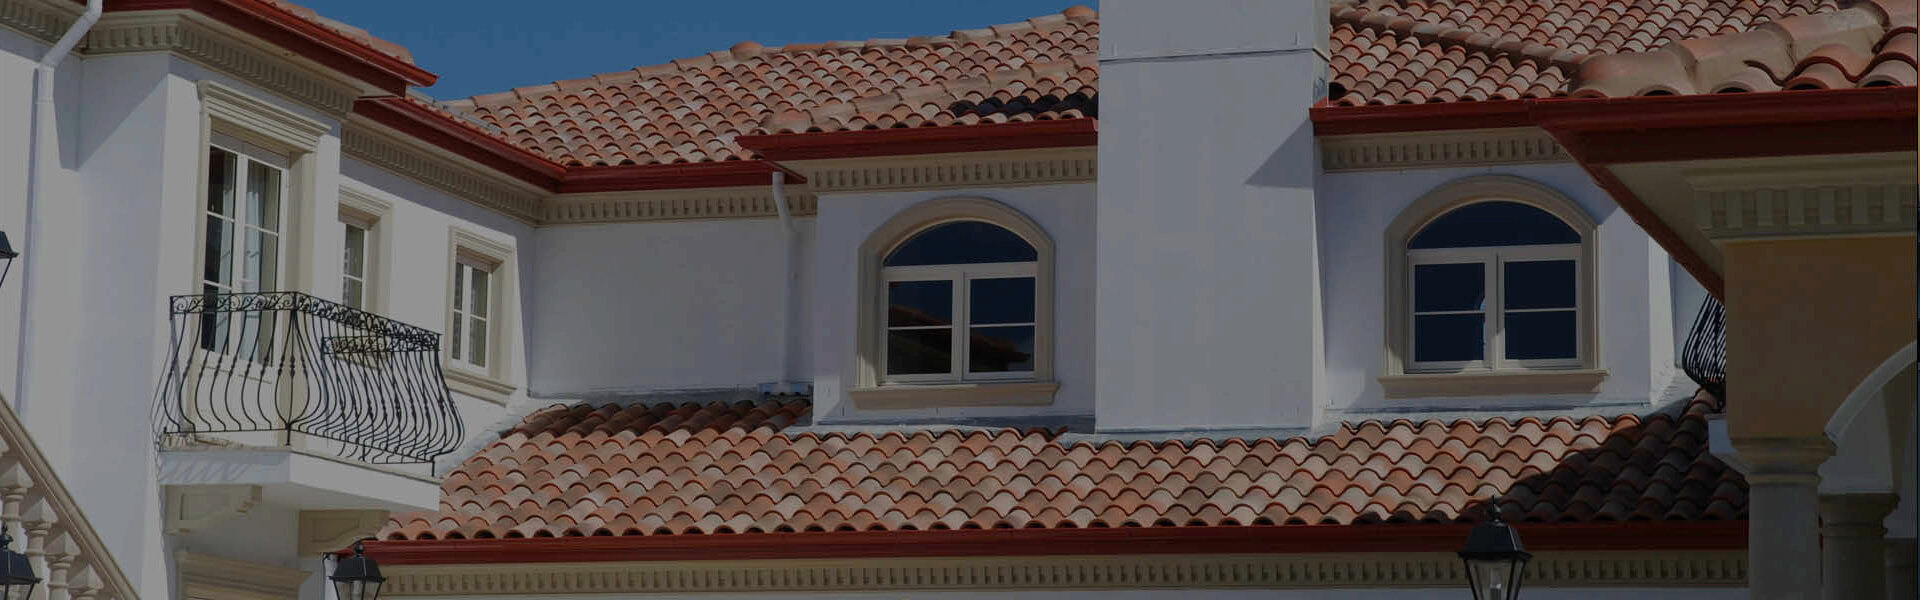 Terracotta Roof TIles - Terracotta & Concrete Roofing